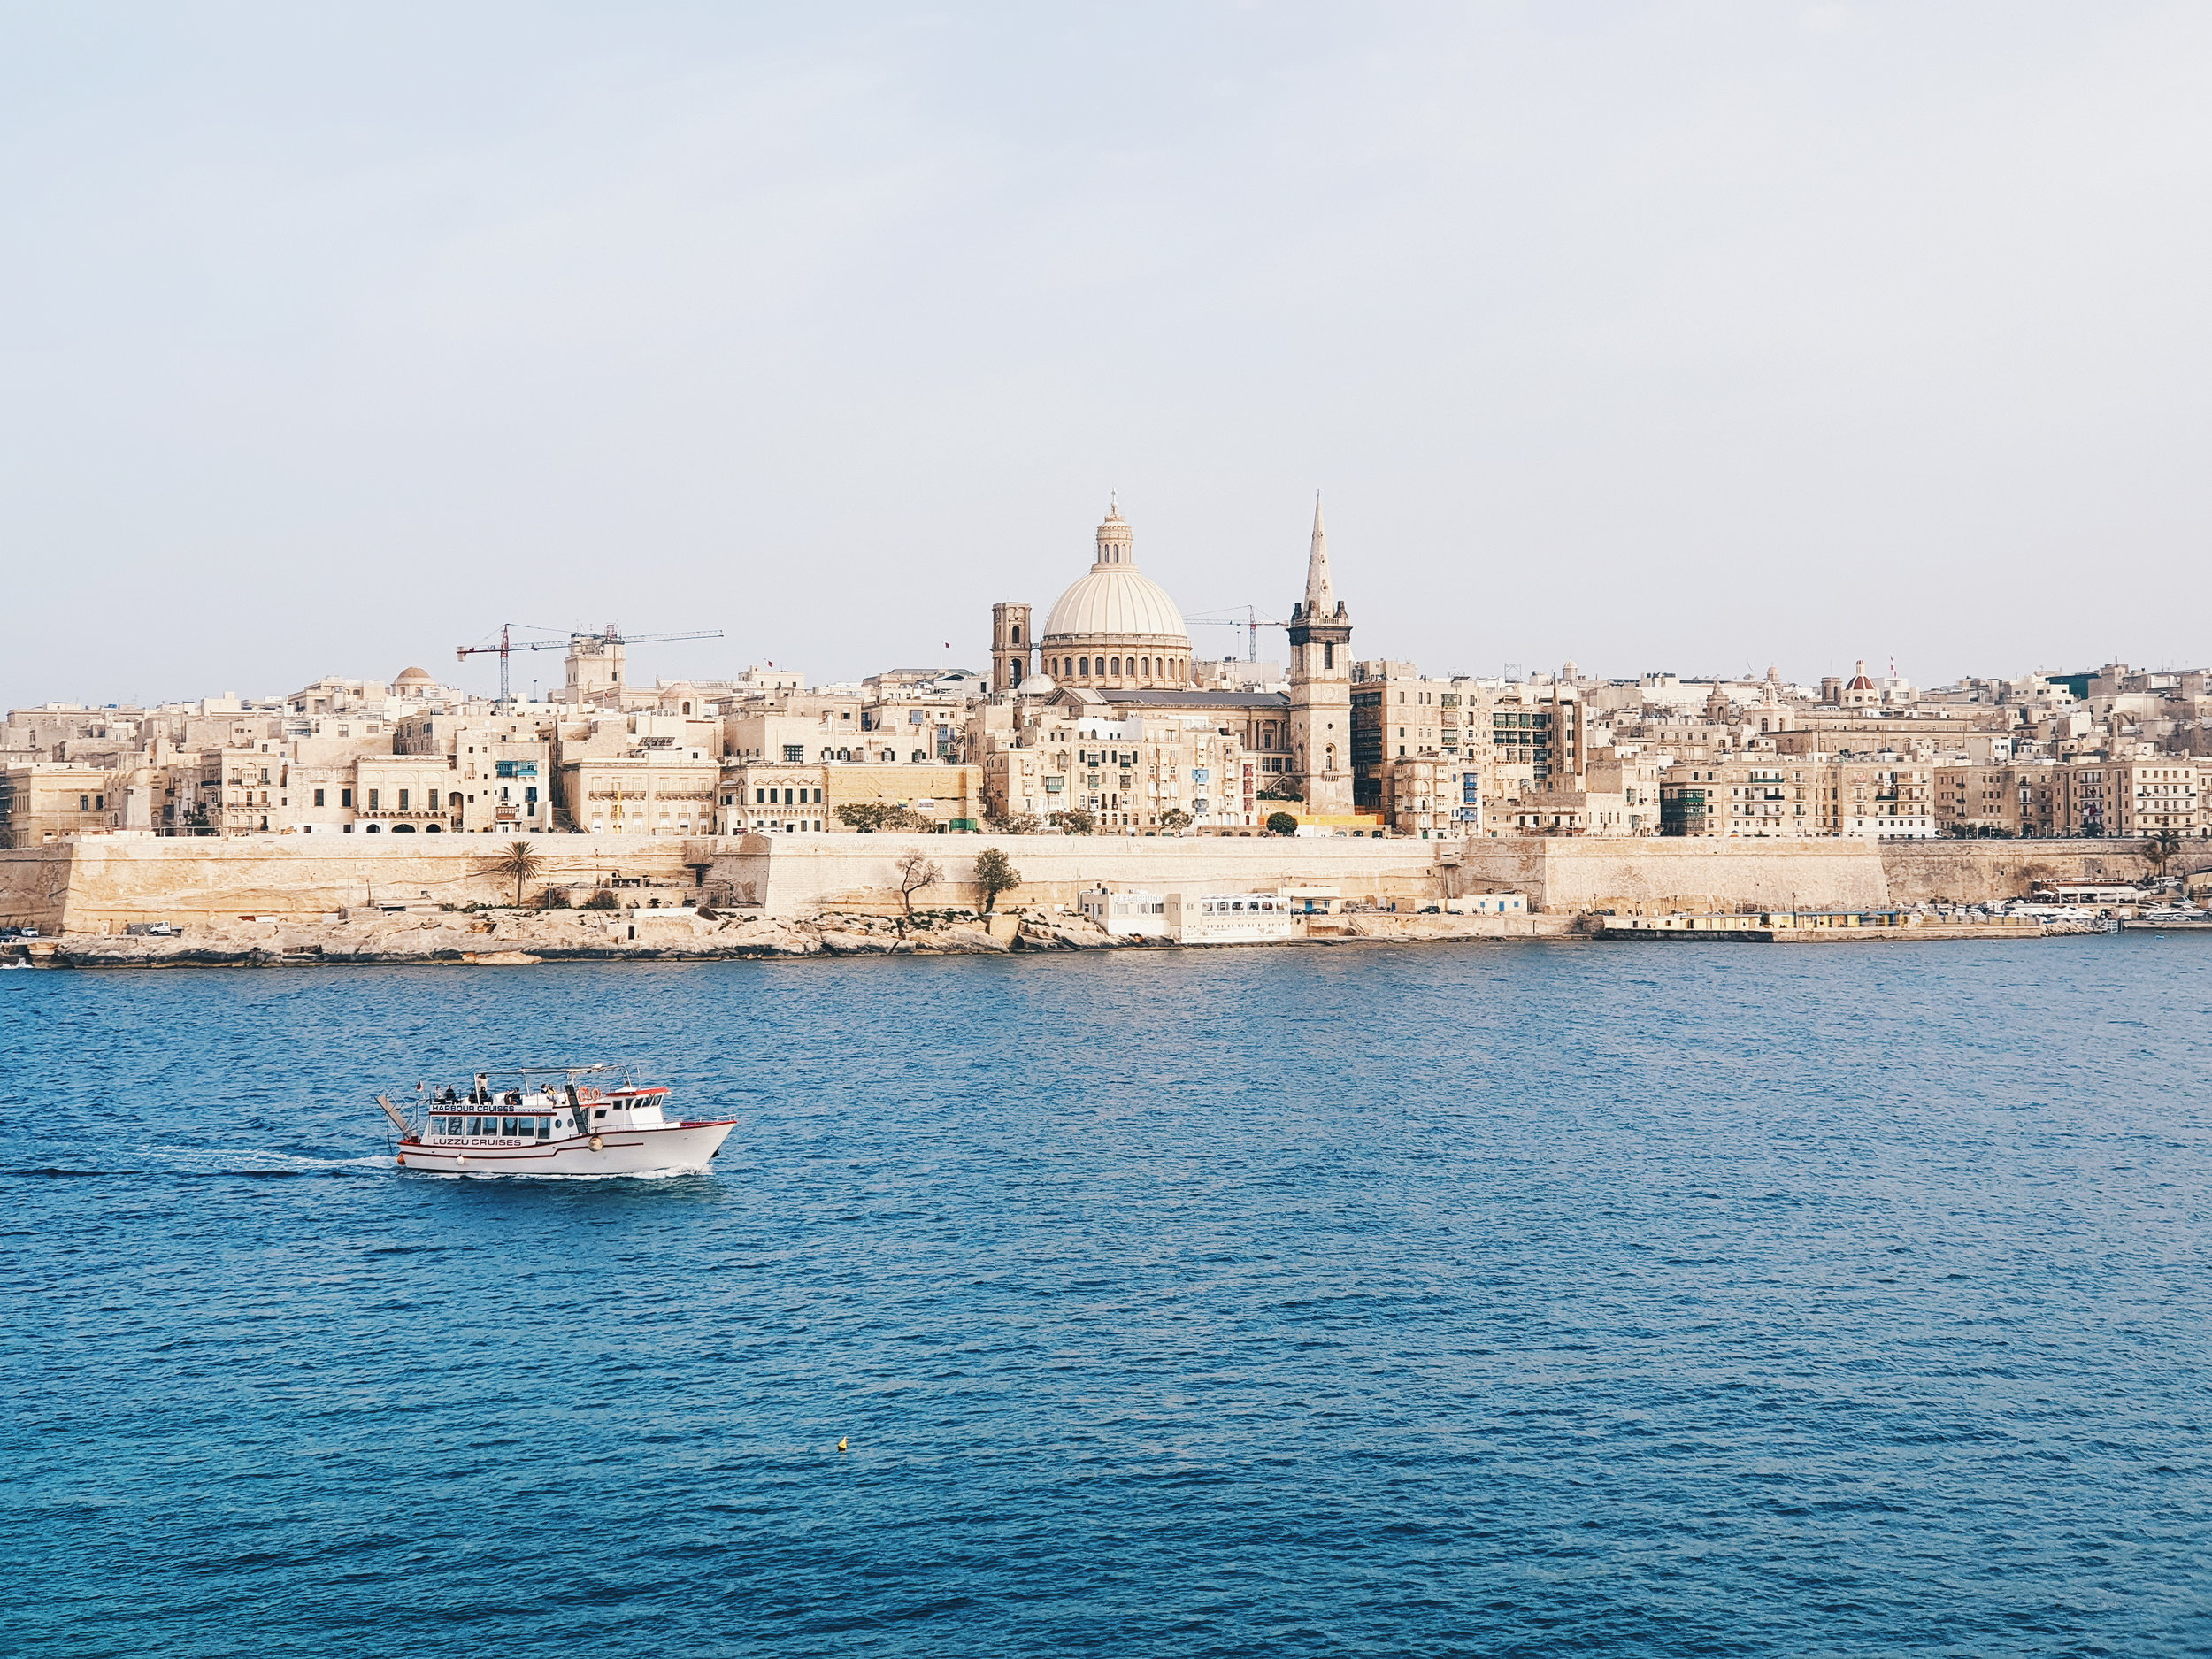 More views of Sliema